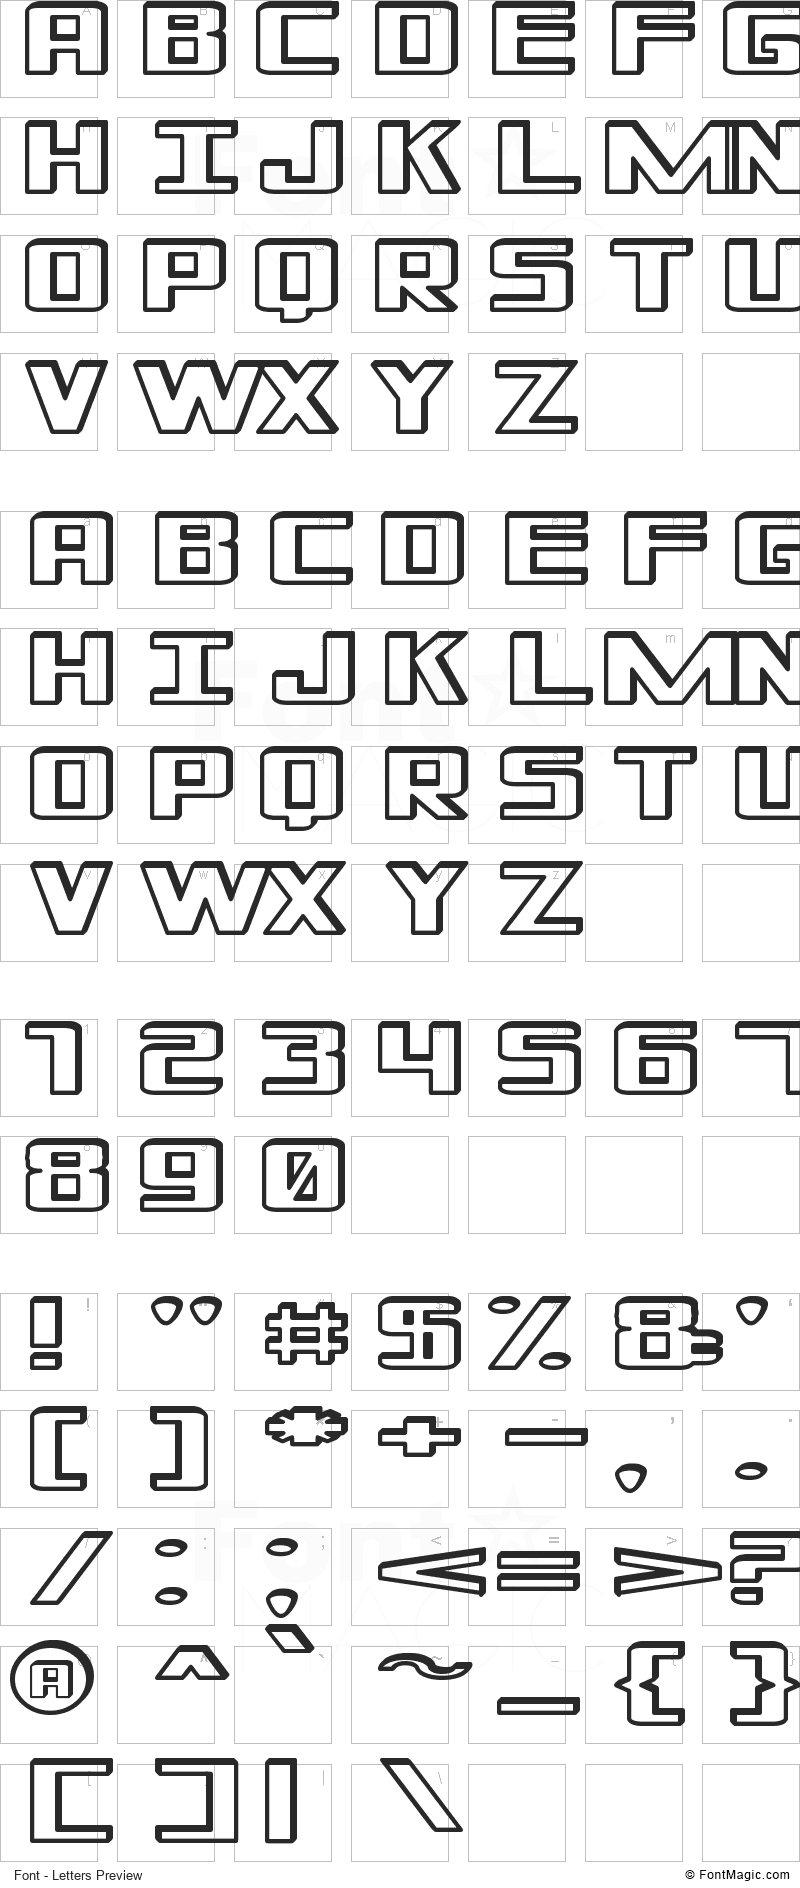 Shadded of South Font - All Latters Preview Chart